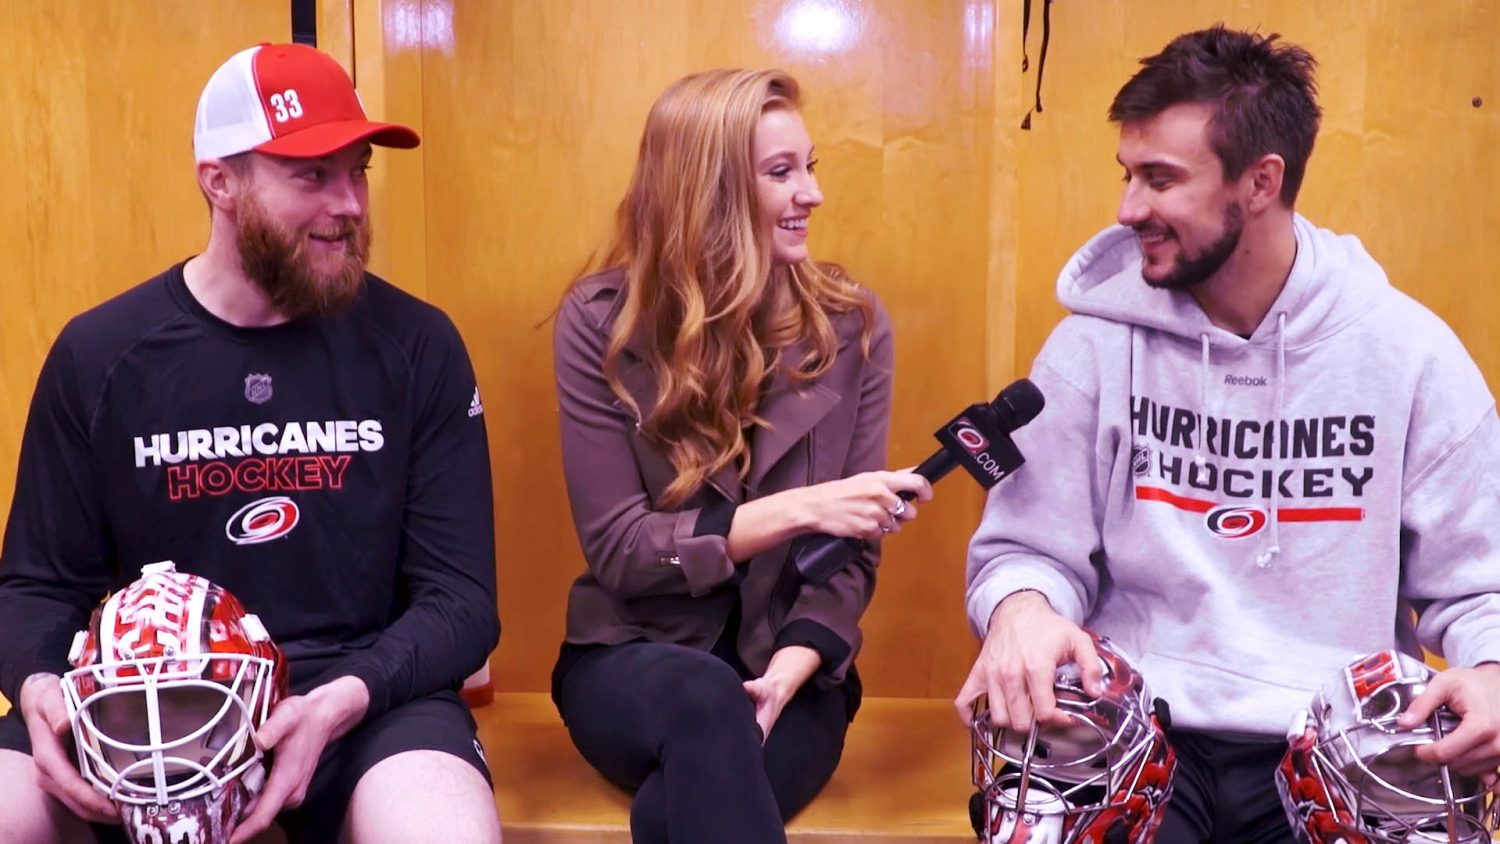 Abby Labar interviews two players from the Carolina Hurricanes